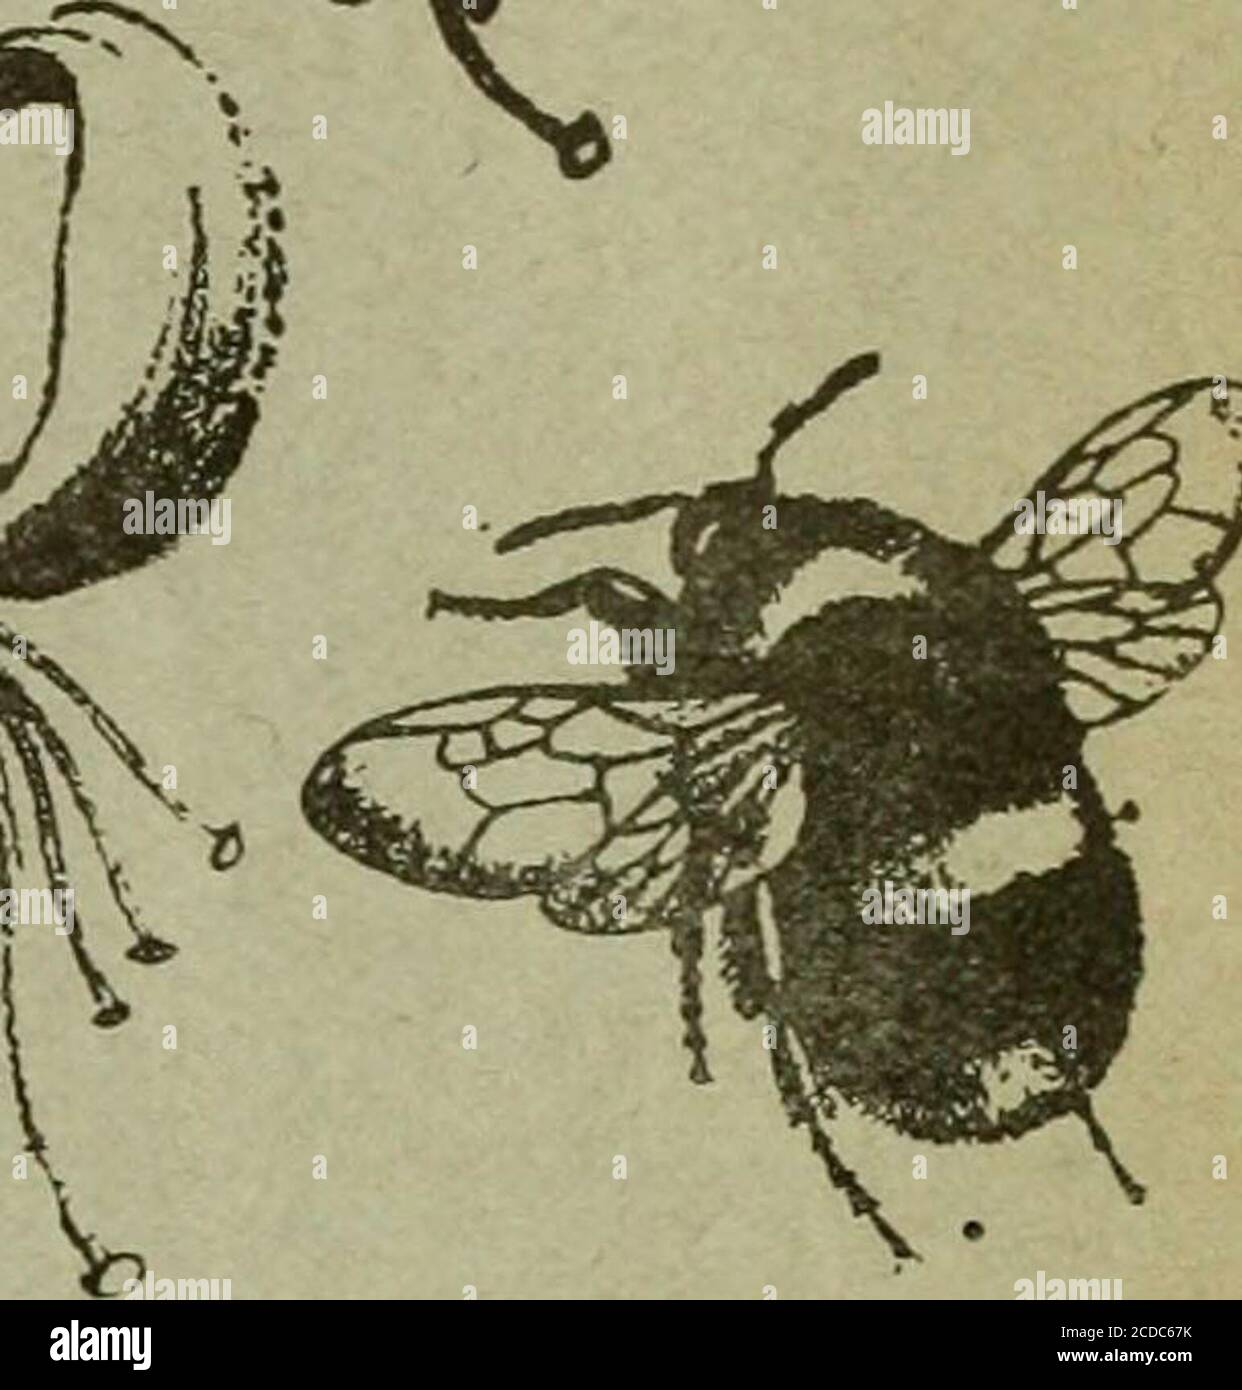 . The Entomologist's record and journal of variation . THE ENTOMOLOGISTS RECORI AND JOURNAL OF VARIATION Edited by J. Ml. TUTT, F.E.S. Assisted by T. HUDSON BEARE, b.sc, f.e.s., f.r.s.e. George T. BETHUNE-BAKER, r.z.s. f.l.s., f.e.s. M. BURR, B.A.,F.z.s.,F.L.s., F.E.S. (Rev.) C. R. N. burrows, f.e.s. Jas. E. COLLIN, F.E.S. T. A. CHAPMAN, m.d., f.z.s., f.e.s.H. St. J. K. DONISTHORPE, f.z.s., f.e.s. Alfred SICH, f.e.s.8 Mic George WHEELER, m.a., f.e.s. JUNE 15th, 1909. Price SIXPENCE (net). ^ (WITH TWO PLATES). ^Subscription for Complete Volume, post tre (Incluaiiigeall DOUBLE NUMBERS, etc.),;SE Stock Photo